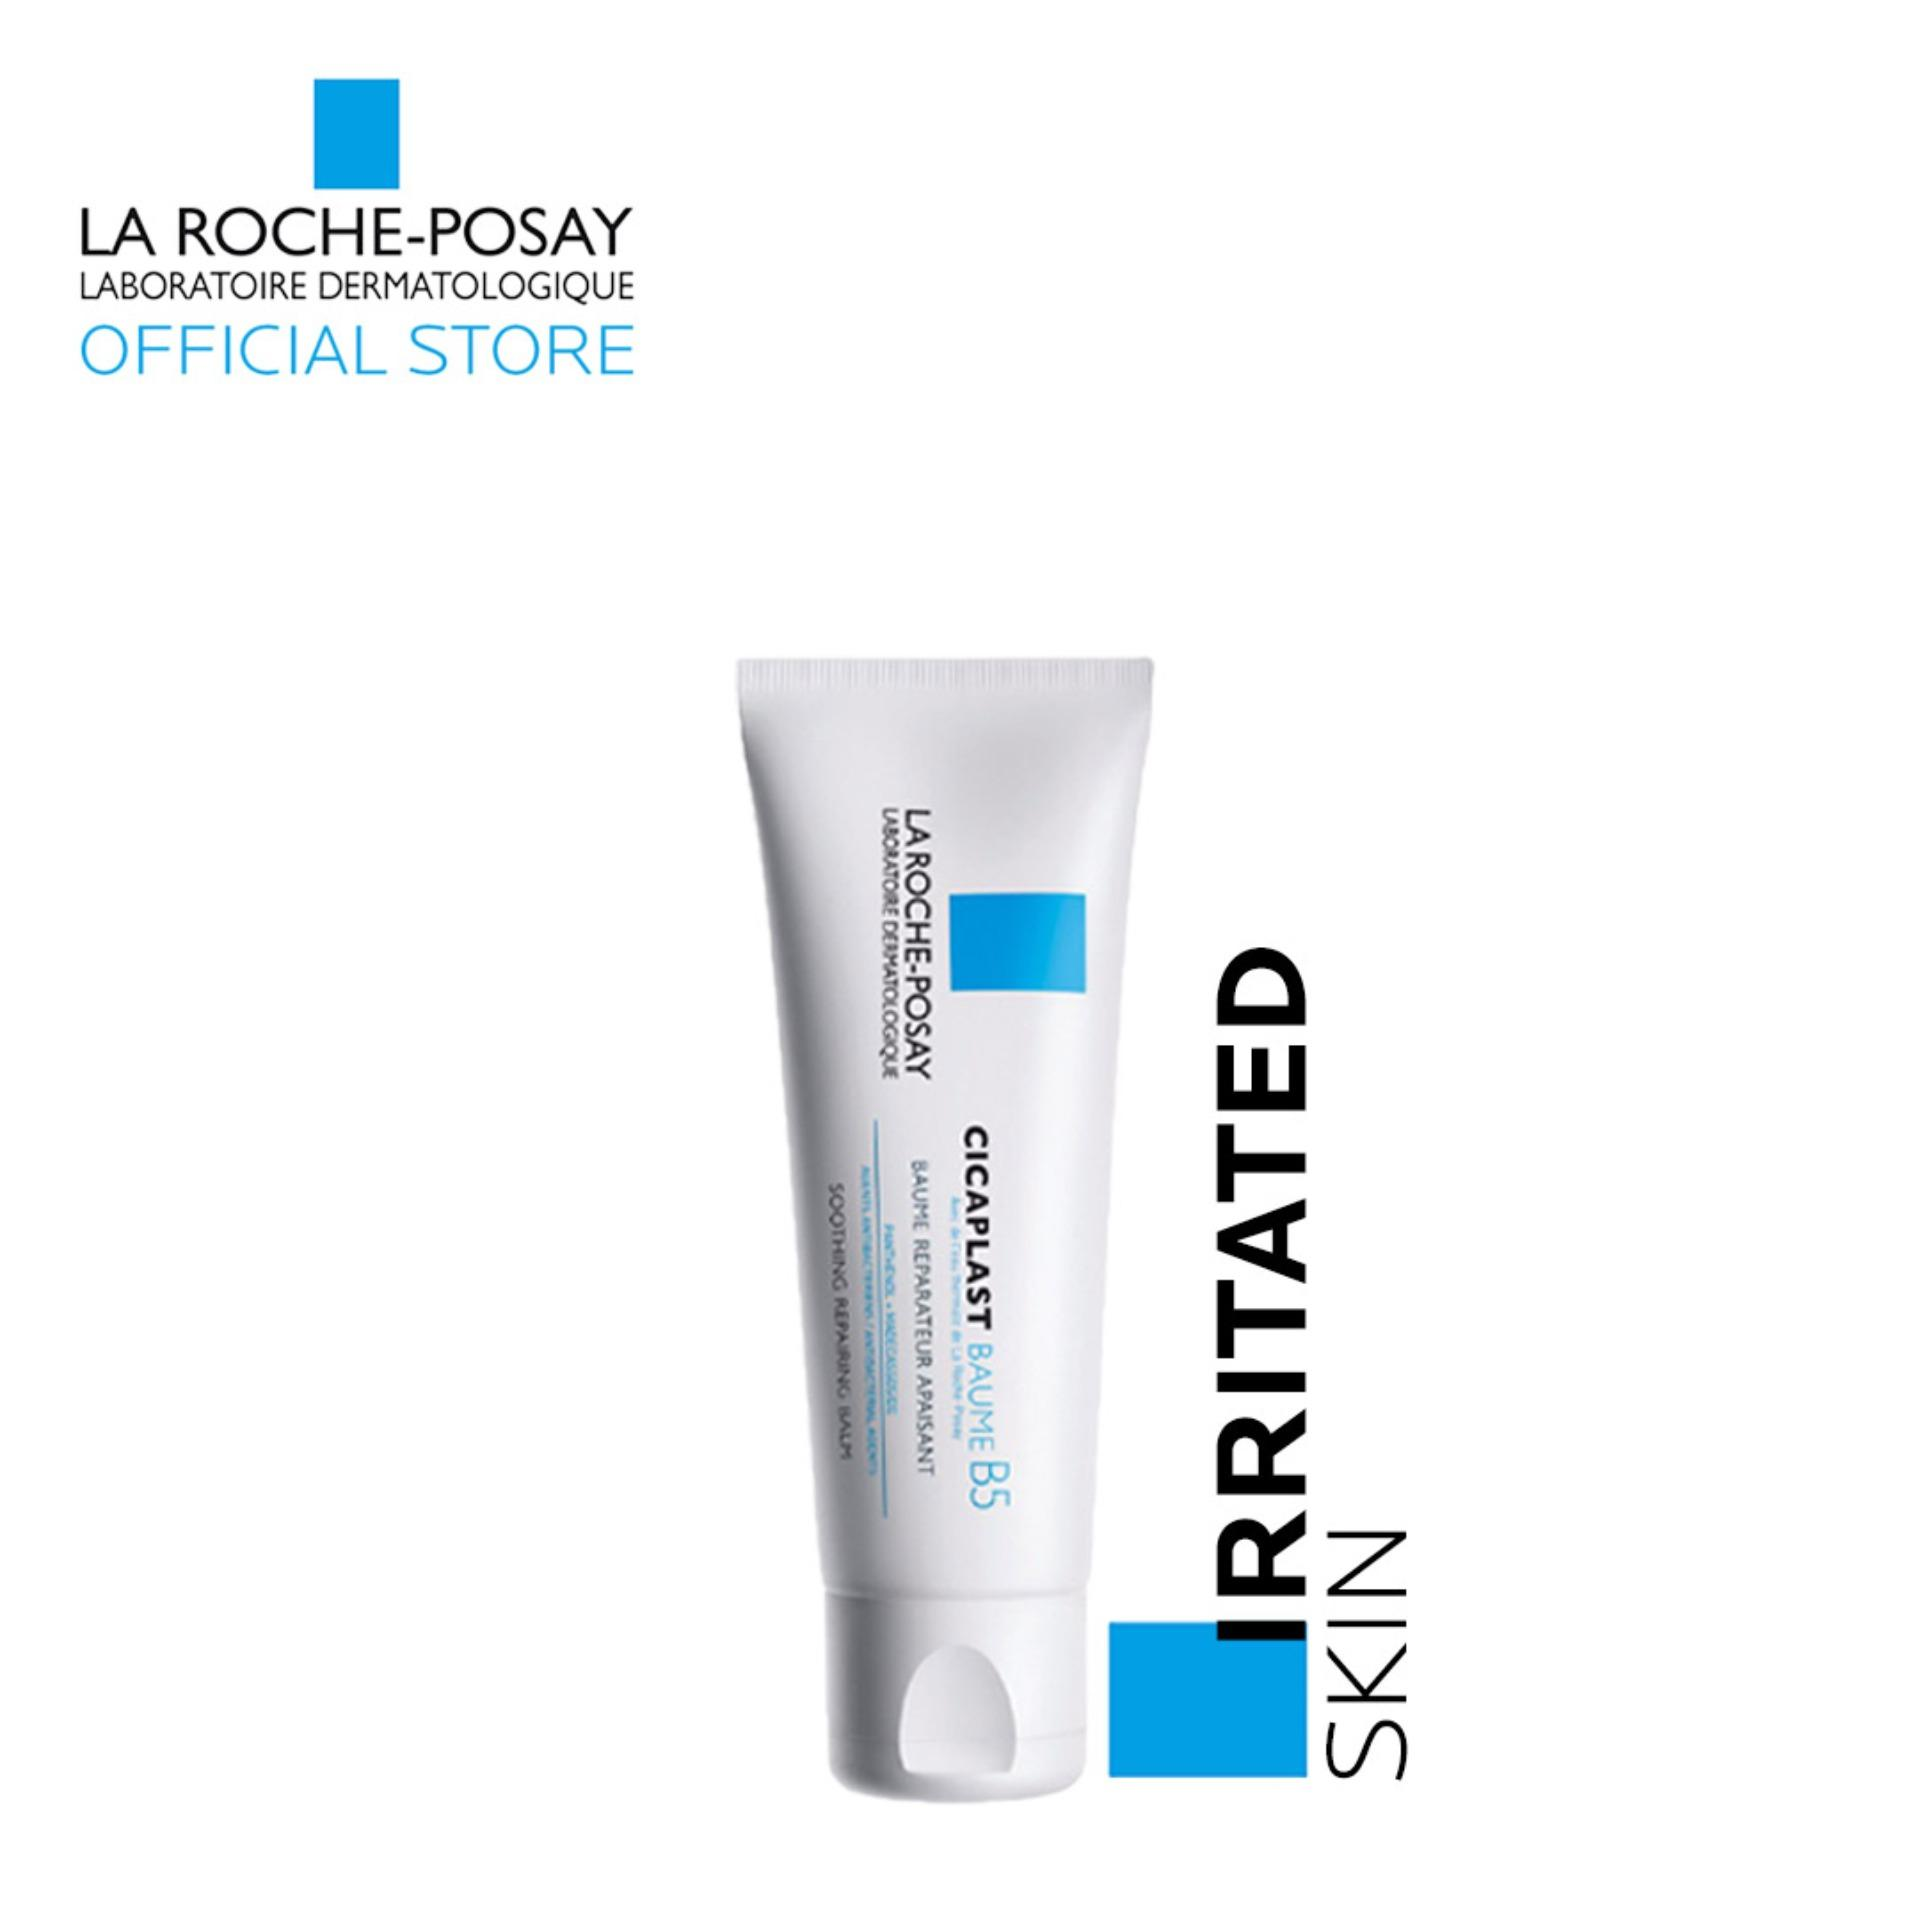 Cicaplast Baume B5 (multi-Repairing Balm) 40ml By La Roche-Posay By La Roche-Posay Official Store.